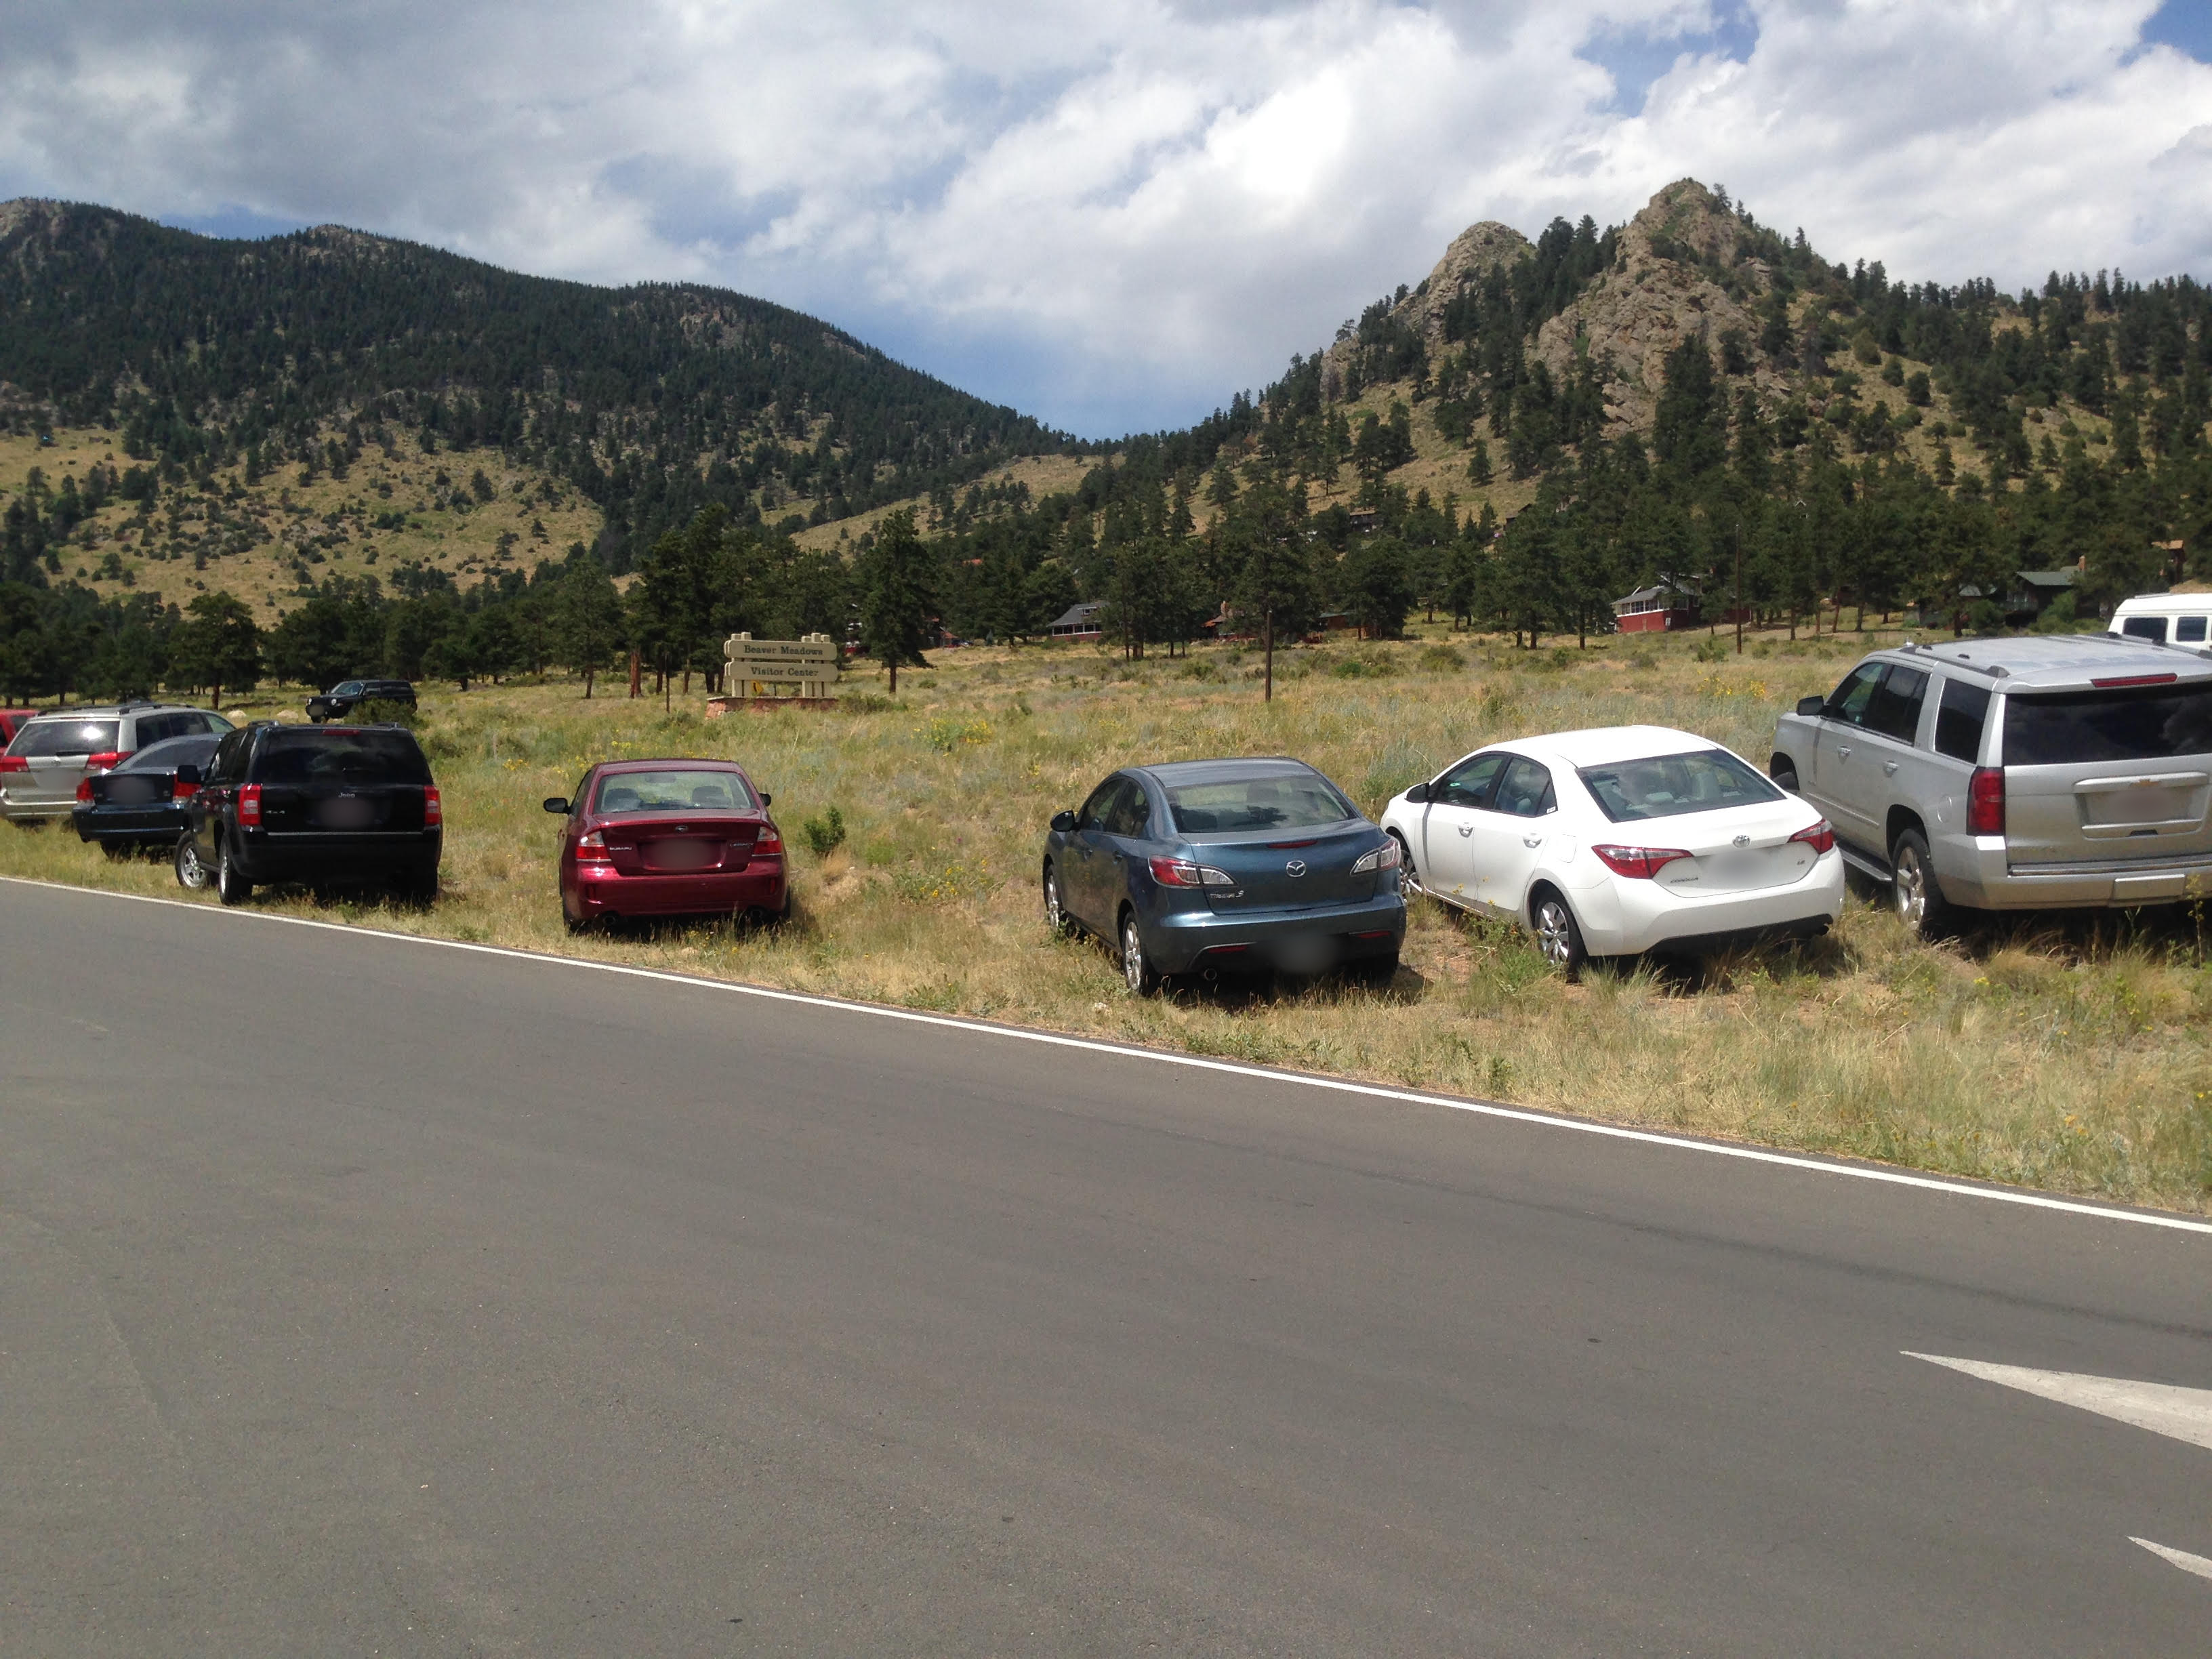 Illegal parking on native vegetation at Beaver Meadows Visitor Center